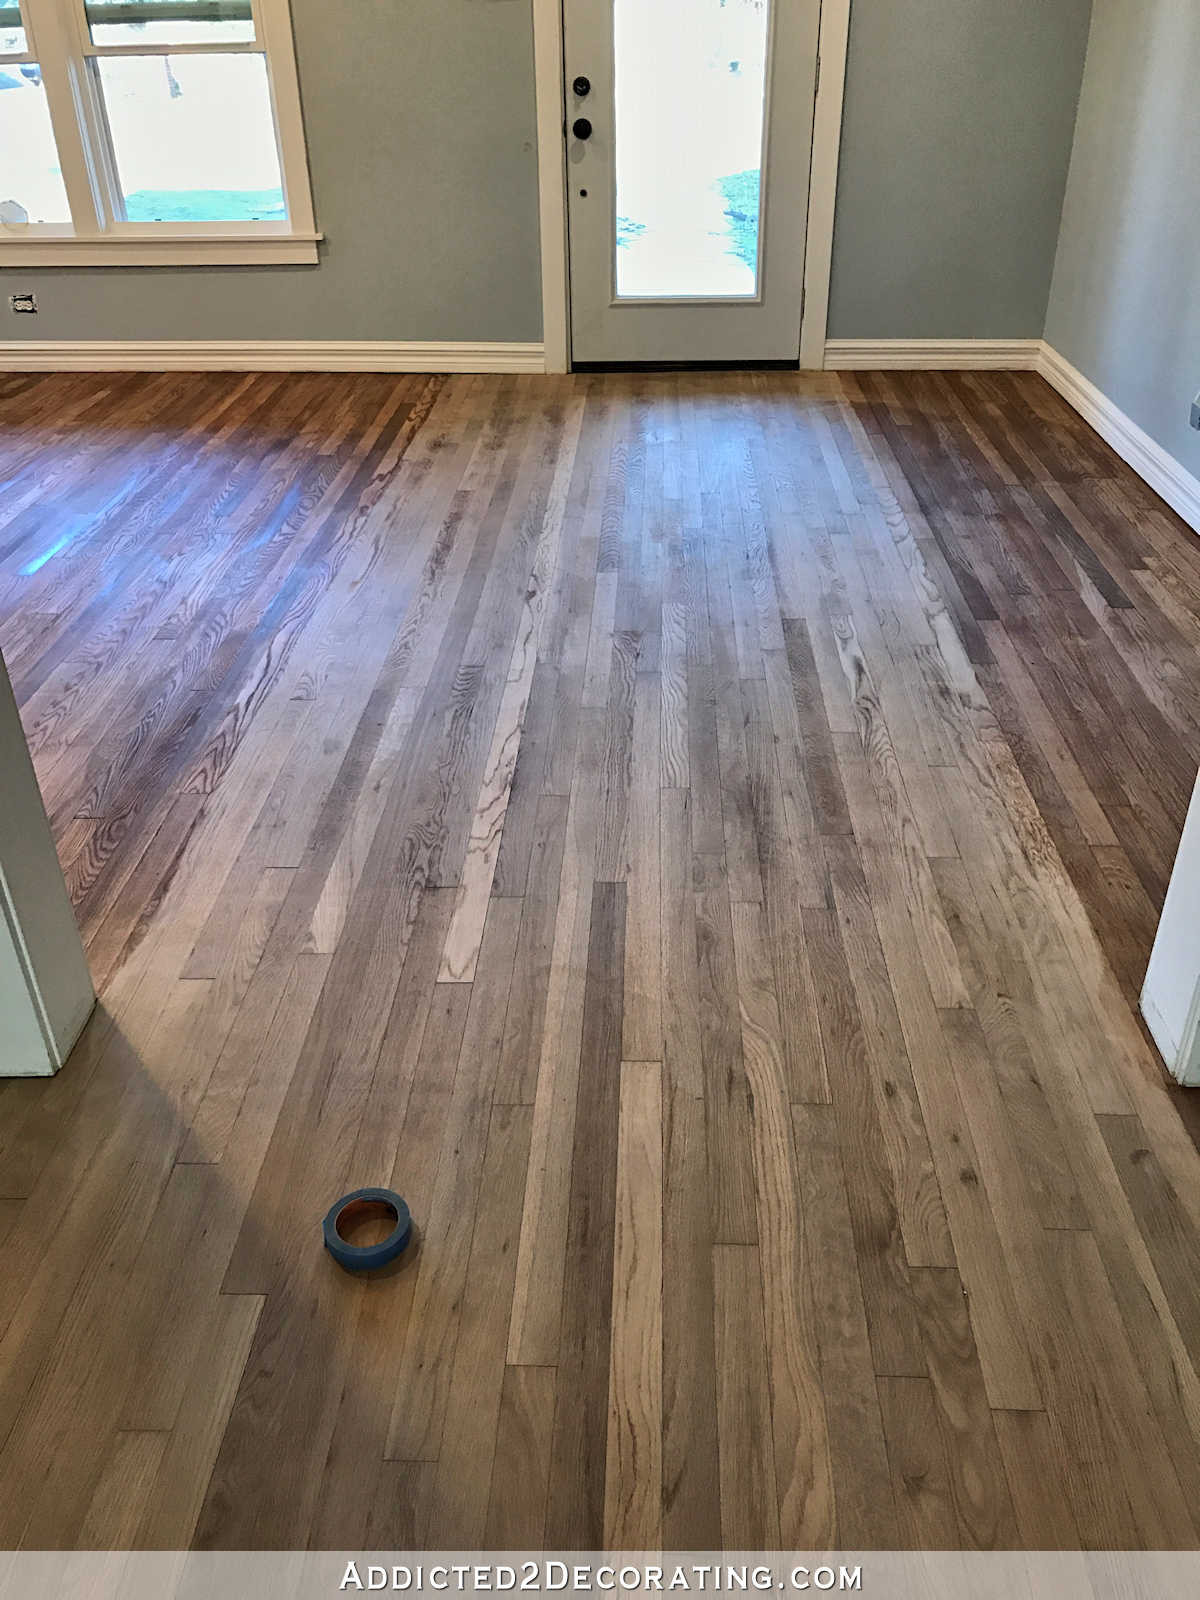 hardwood floor refinishing colors of adventures in staining my red oak hardwood floors products process regarding staining red oak hardwood floors 4 entryway and living room wood conditioner